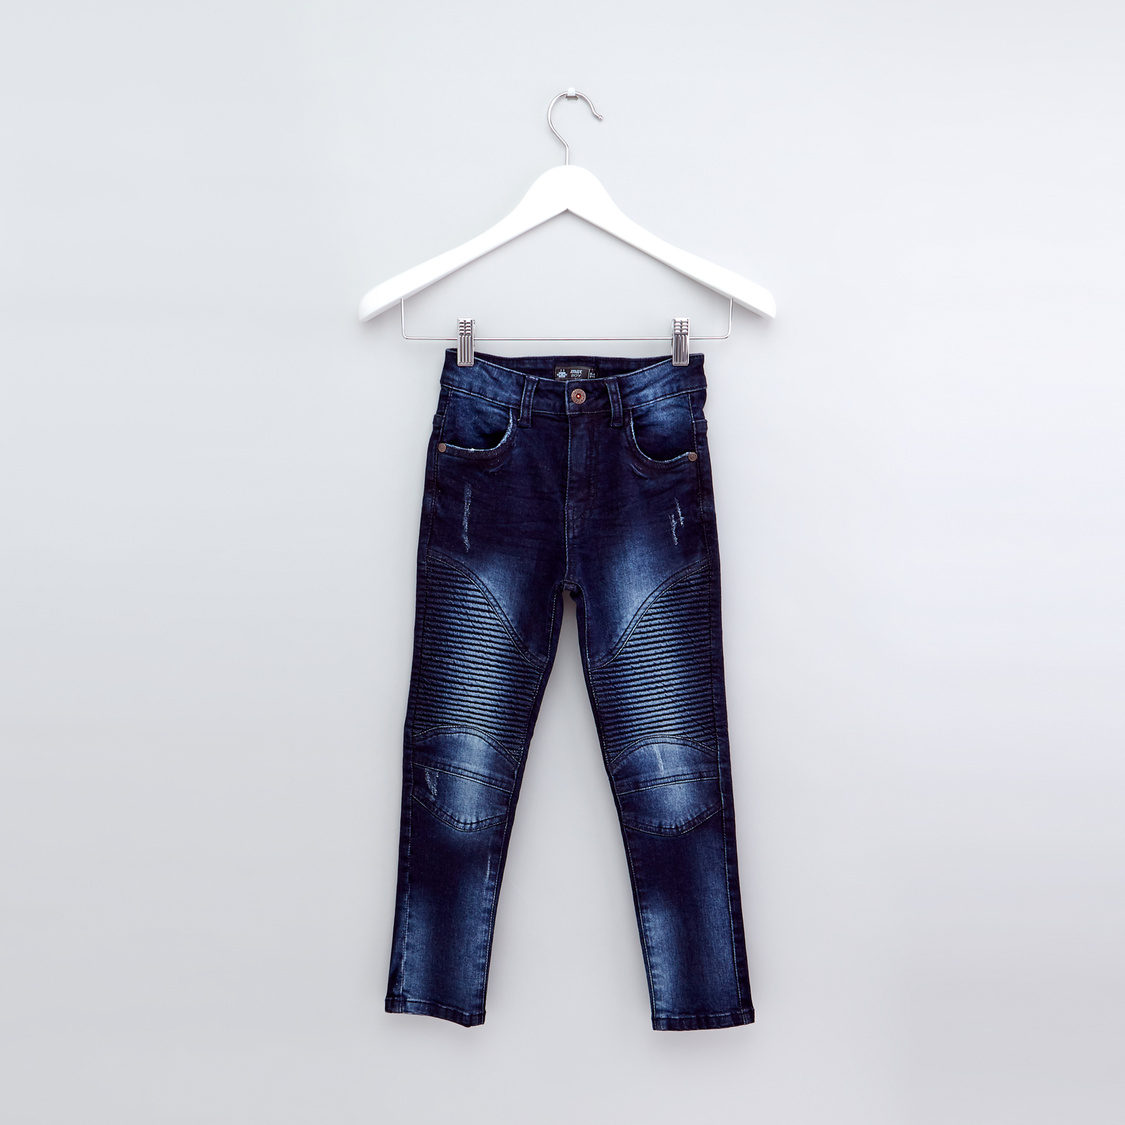 Textured Full Length Jeans with Button Closure and Pocket Detail